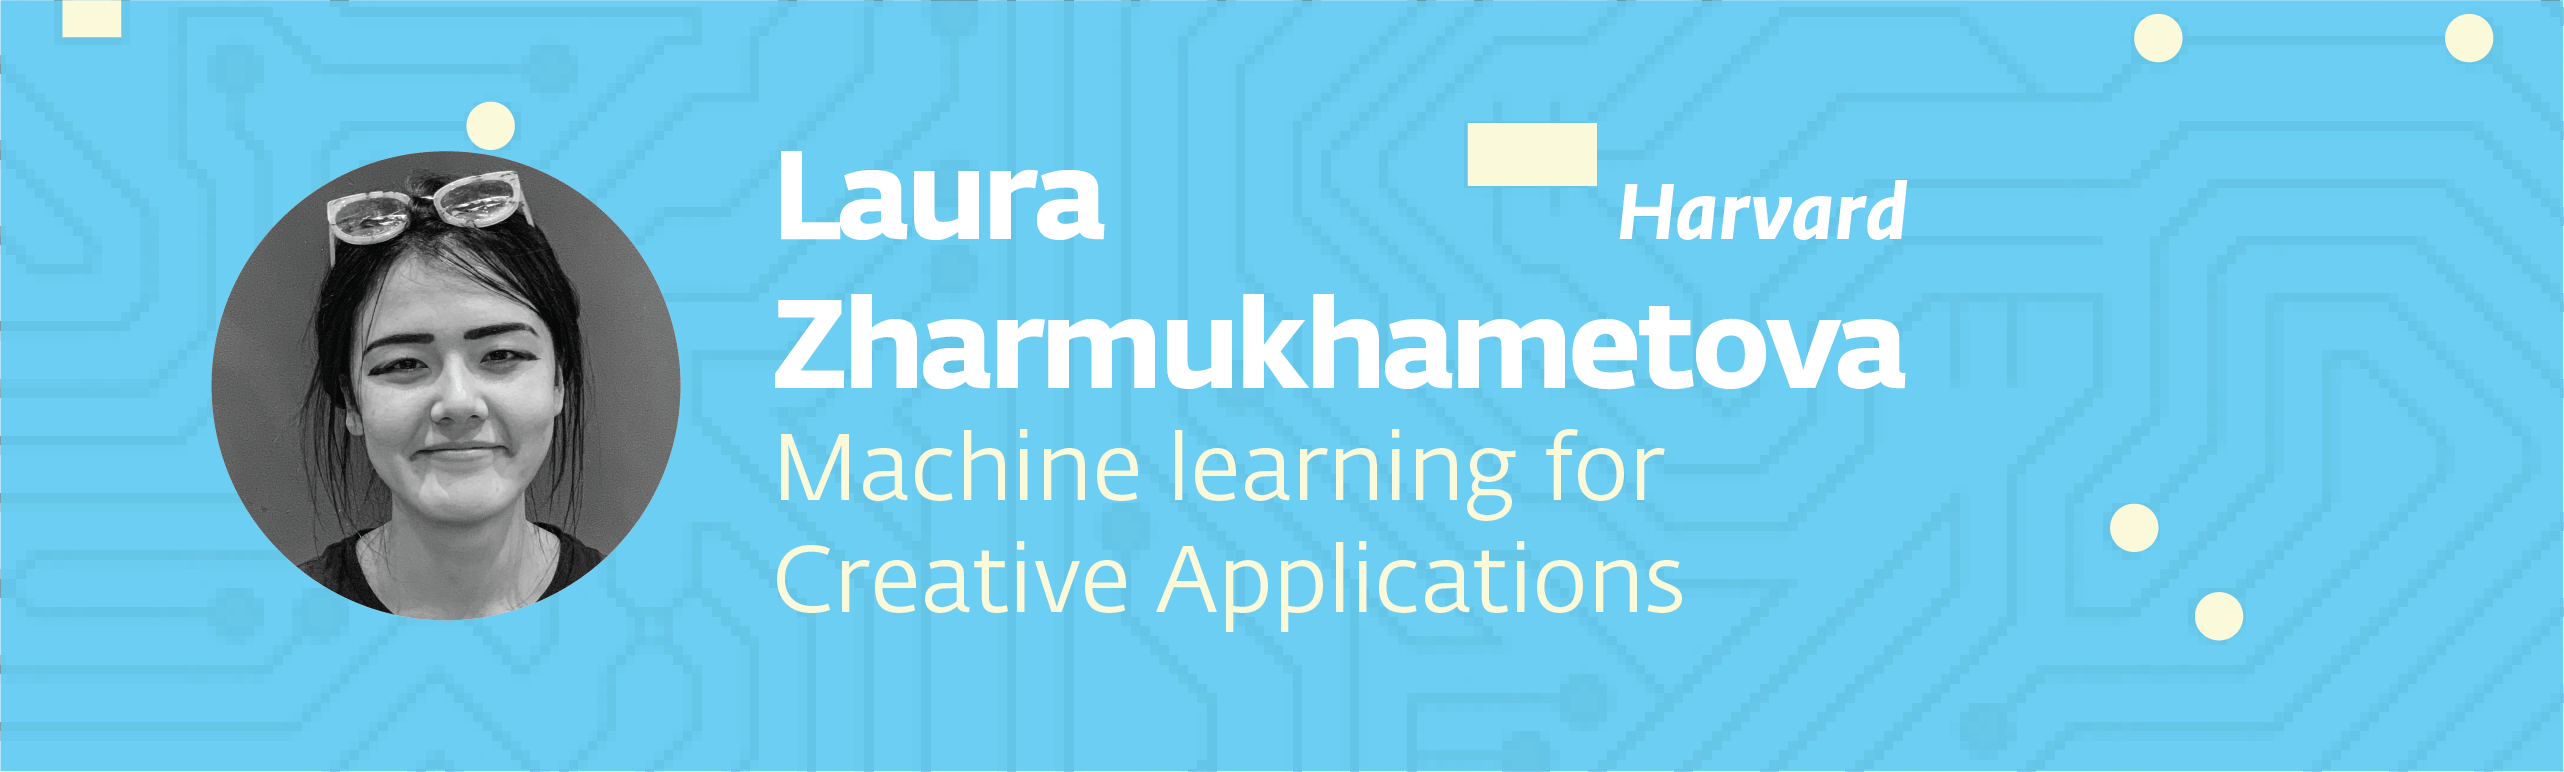 NewBanner for Page 12 - Machine learning for creative applications